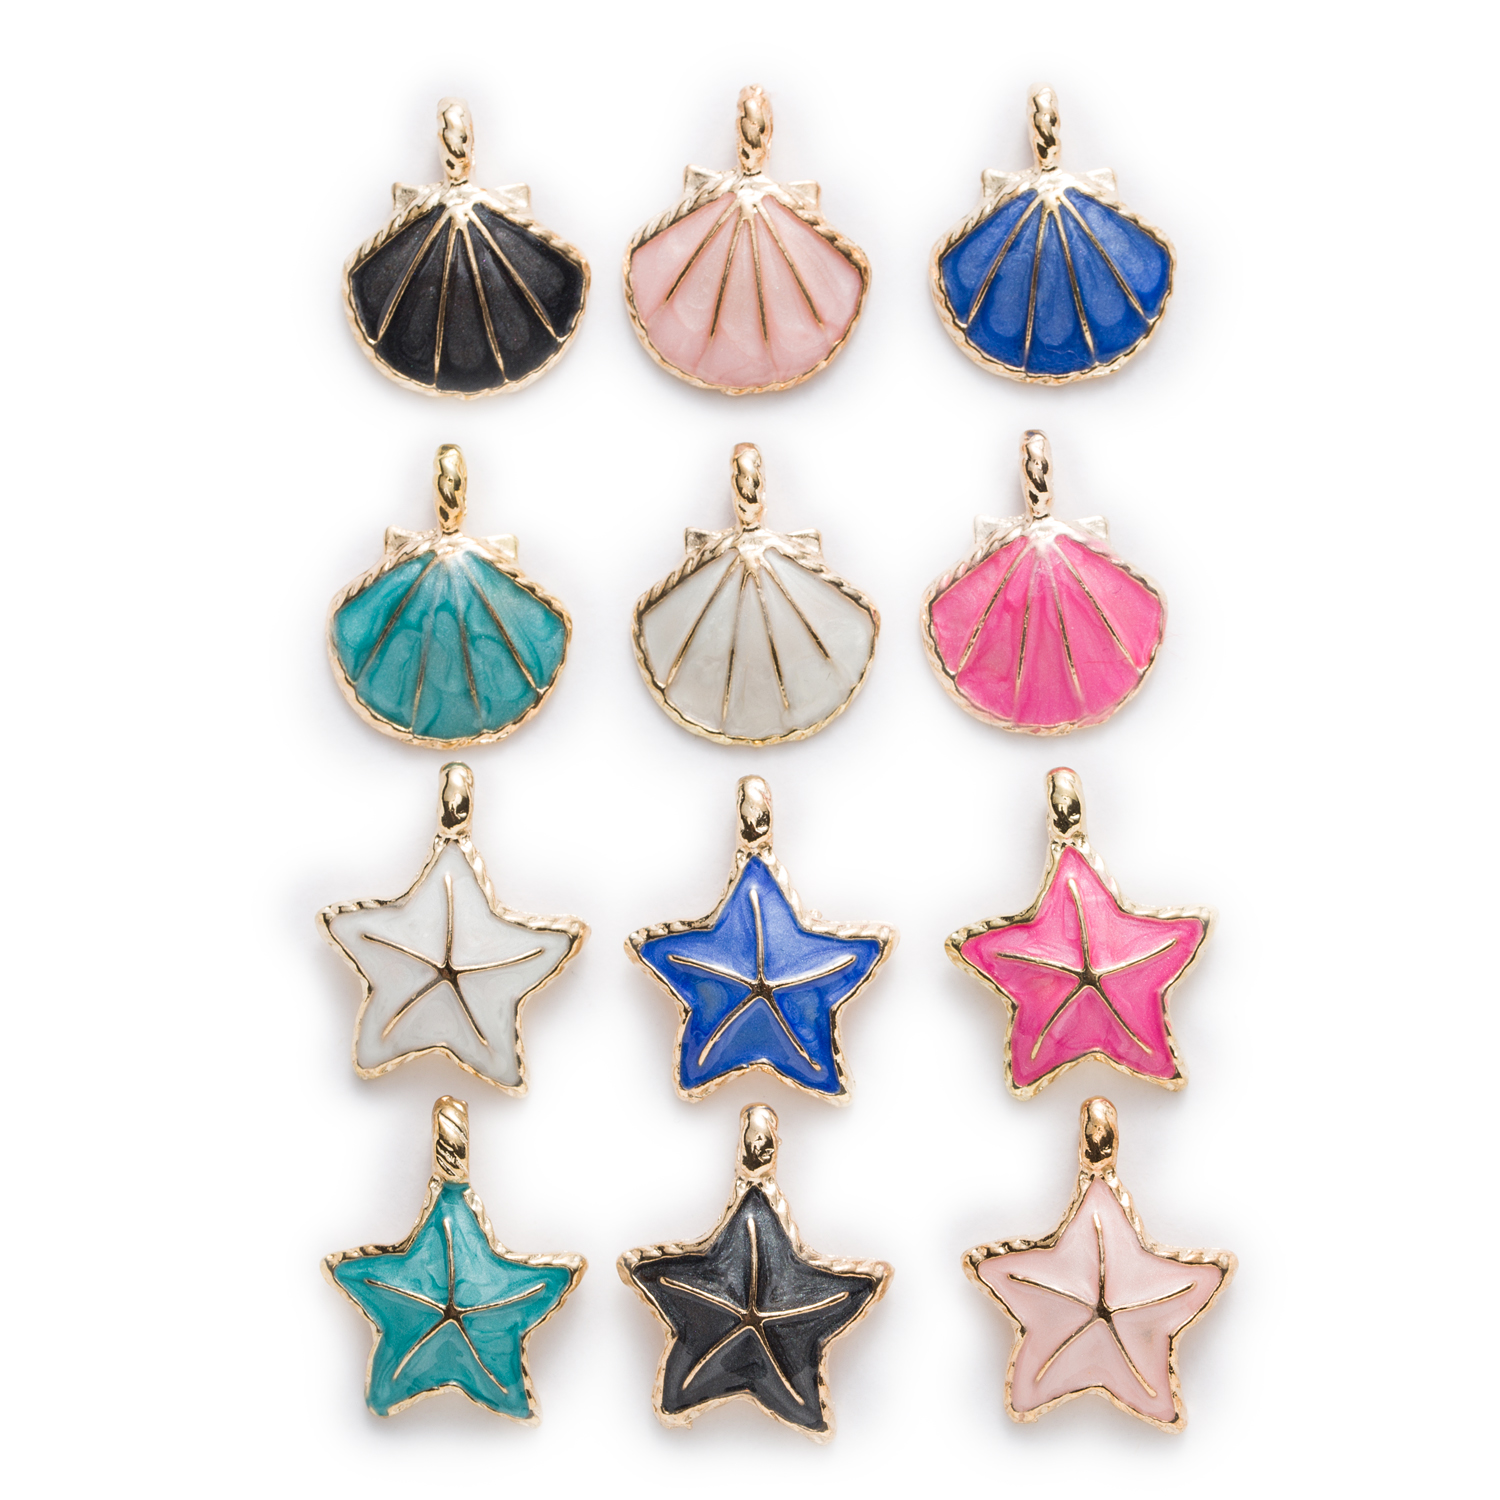 Crystal Starfish Pendants Star Charms DIY Clear Glass Enamel DIY Jewelry Making